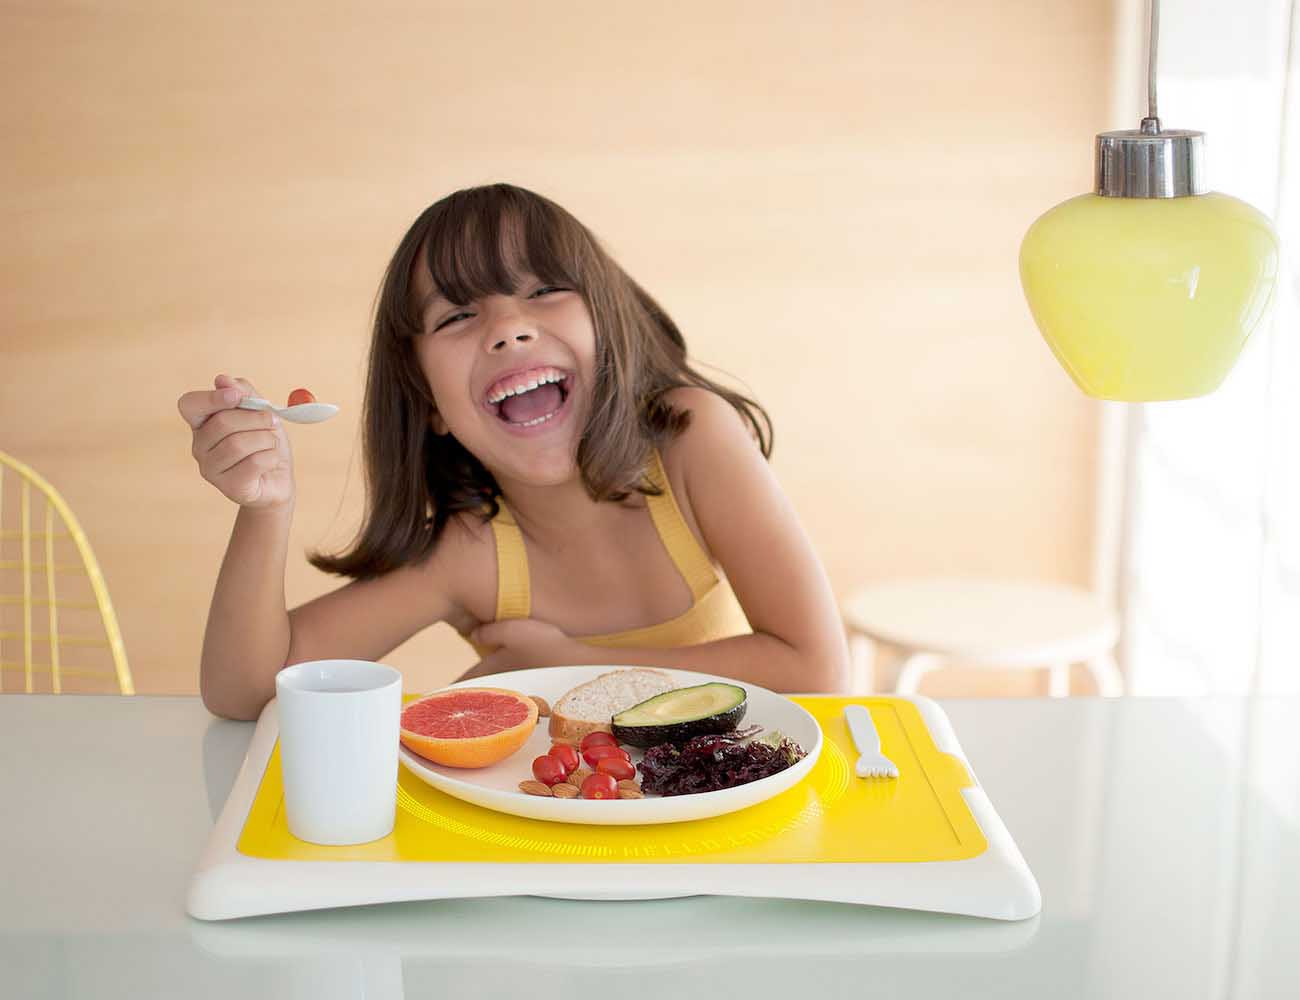 Yumit– Interactive Meal Set for Kids